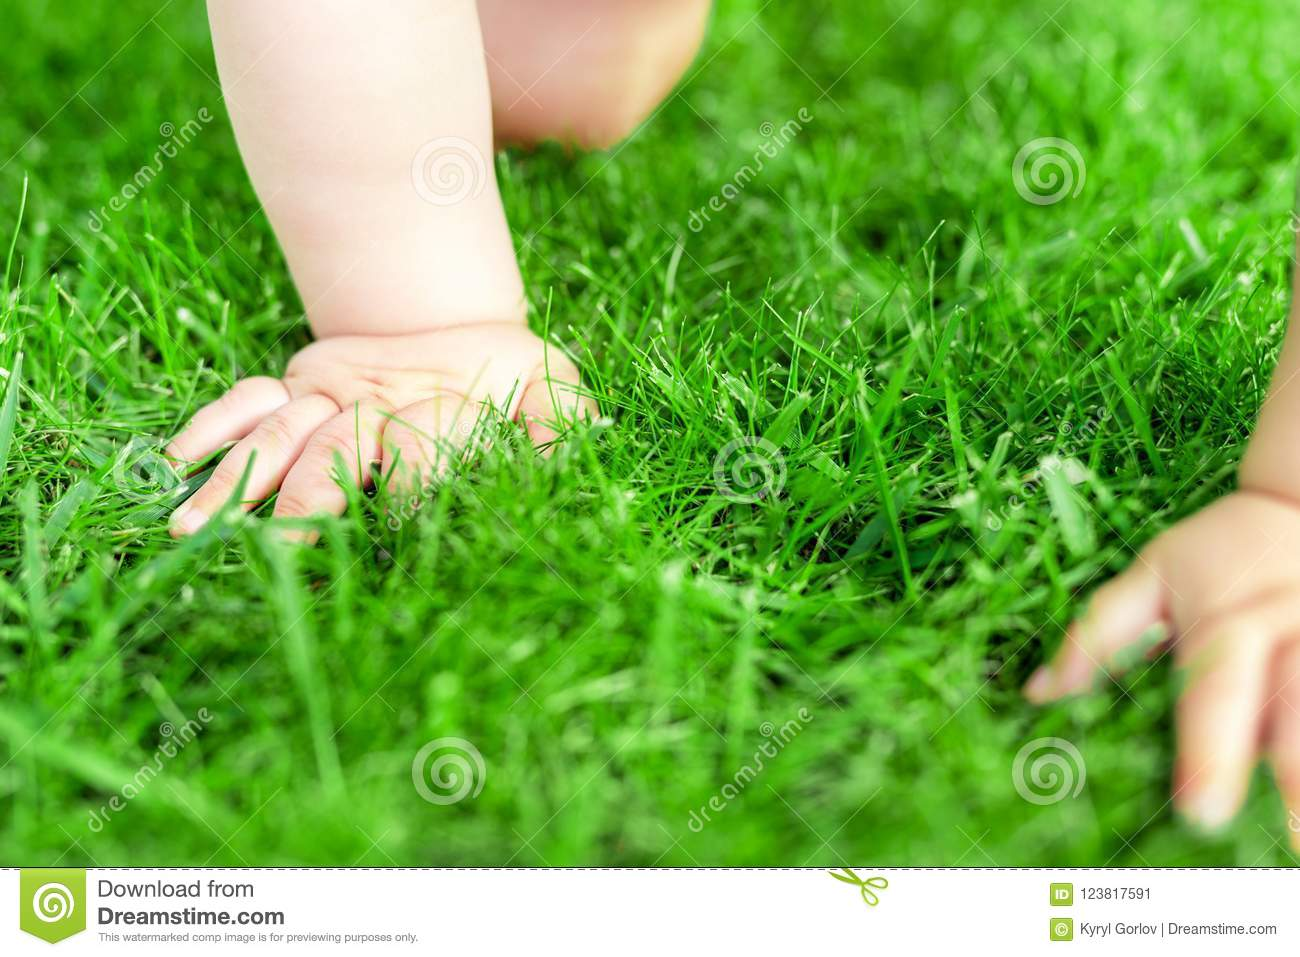 Close-up baby crowling through green grass lawn. Details infant hand walking in park . Child discovering and exploring nature and